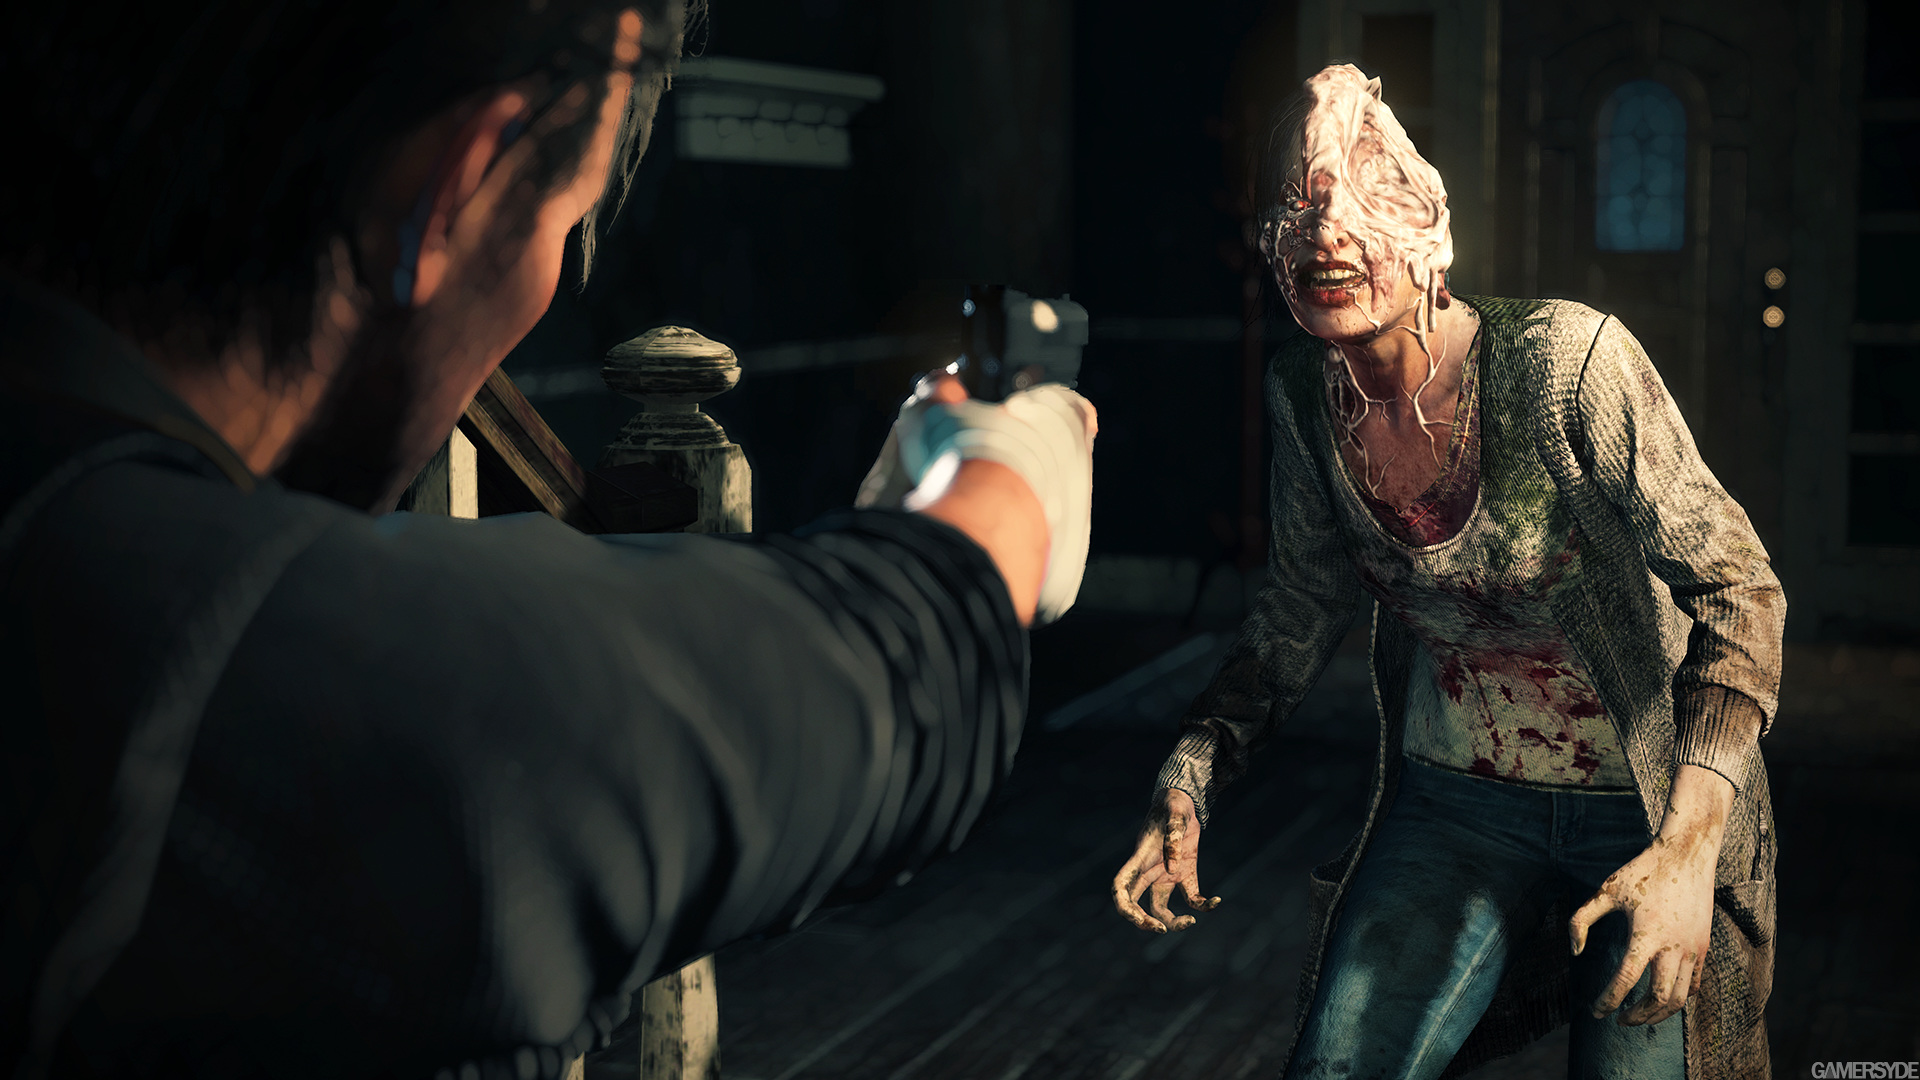 image_the_evil_within_2-35705-3886_0003.